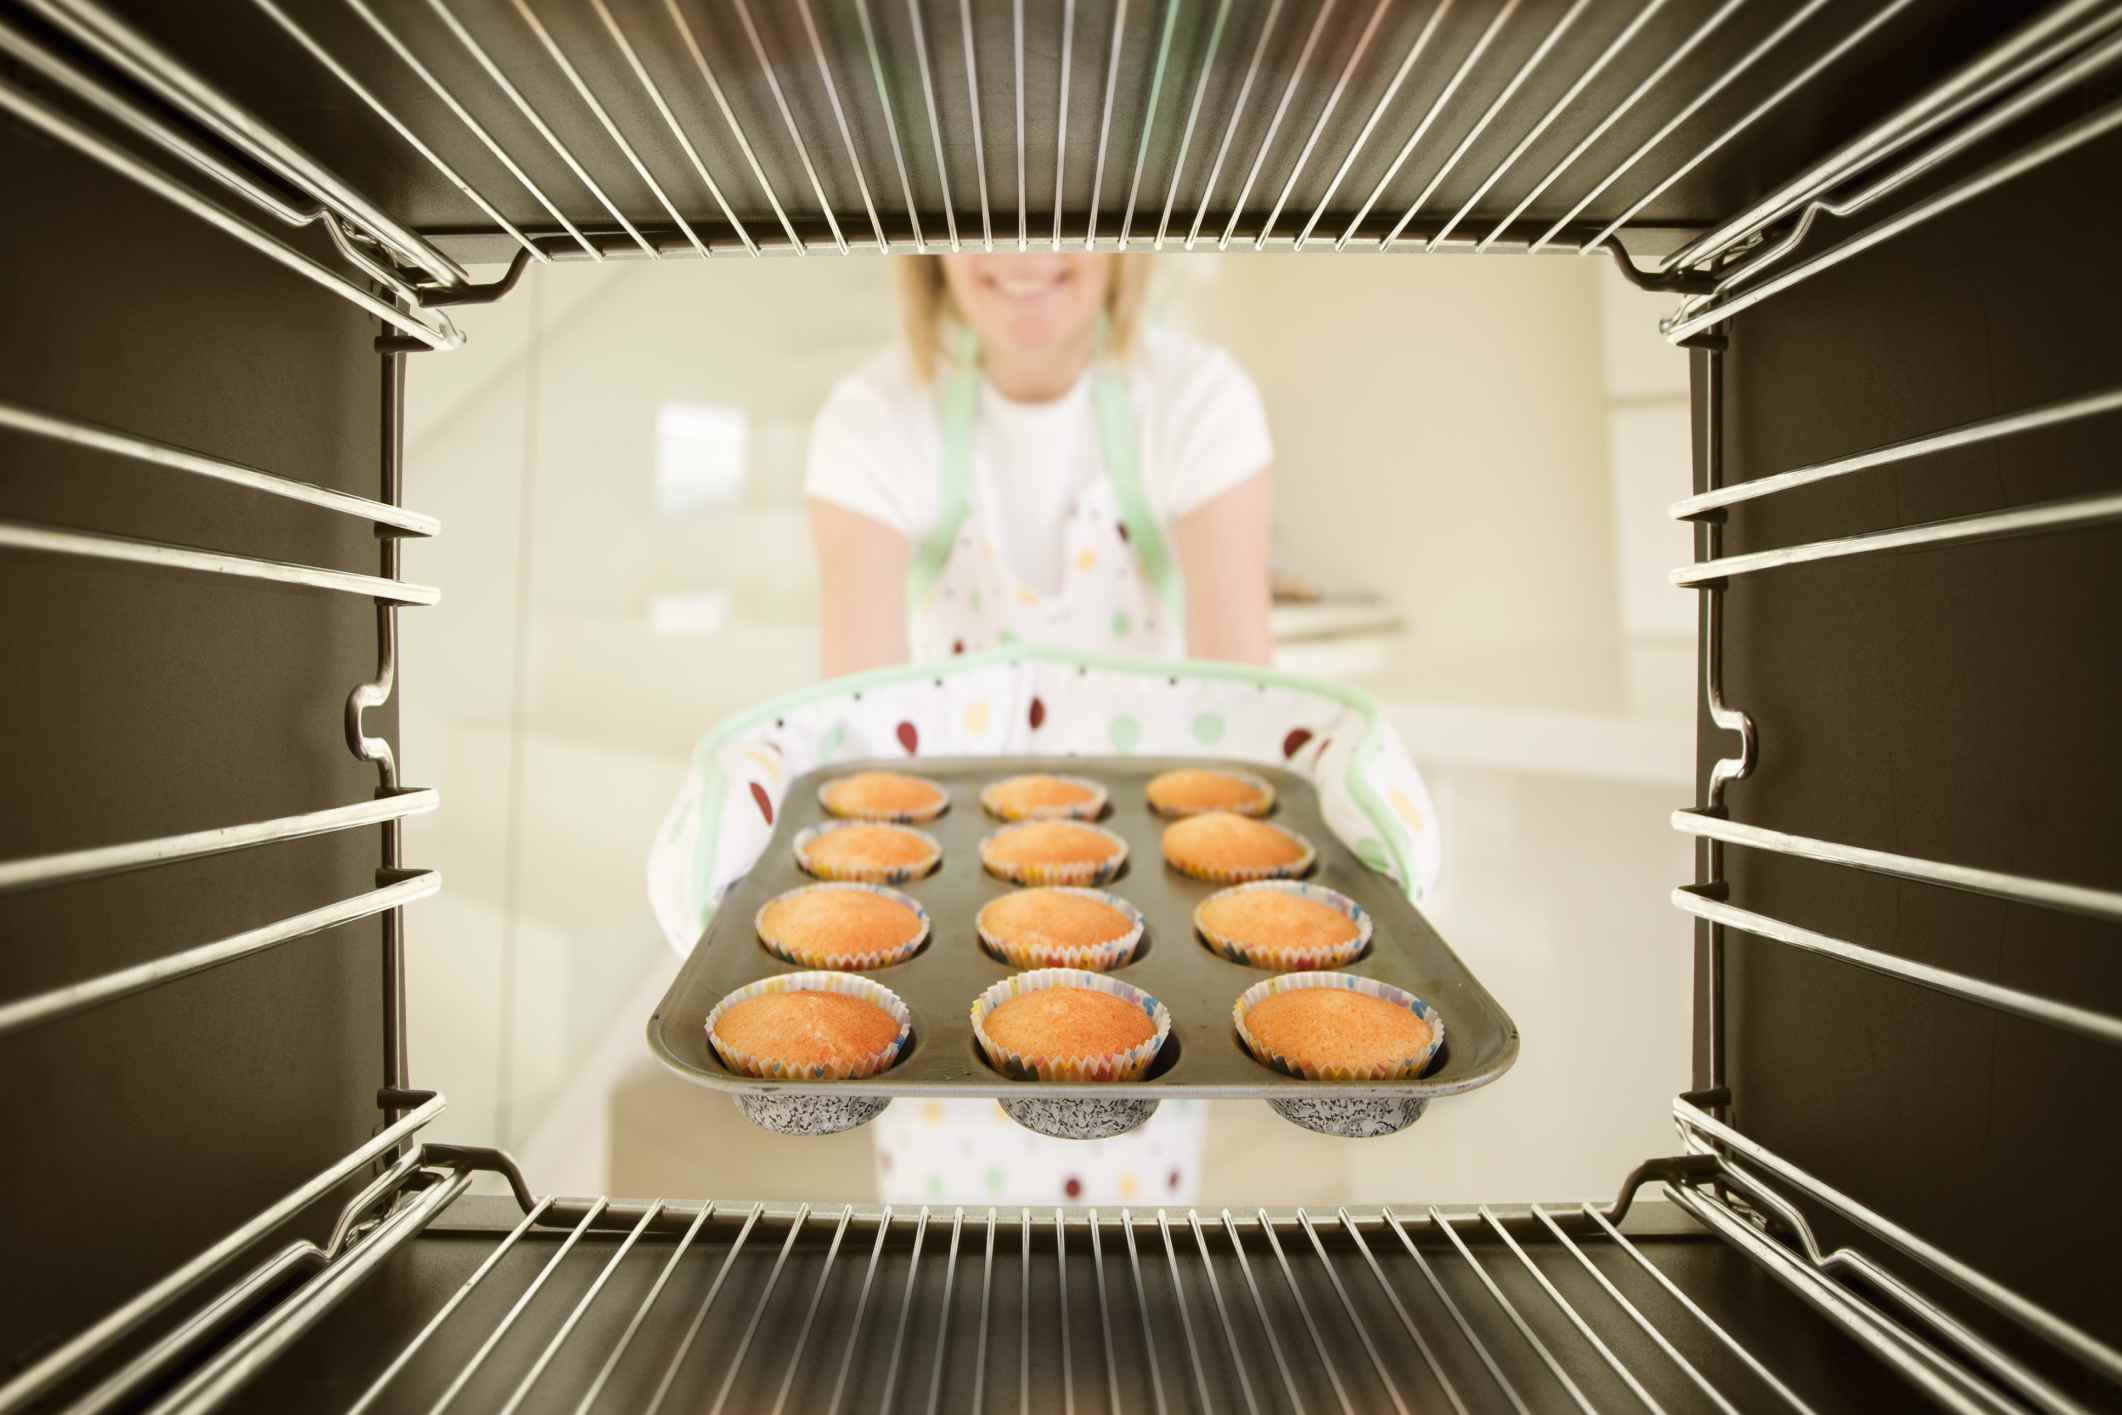 oven with gluten-free muffins